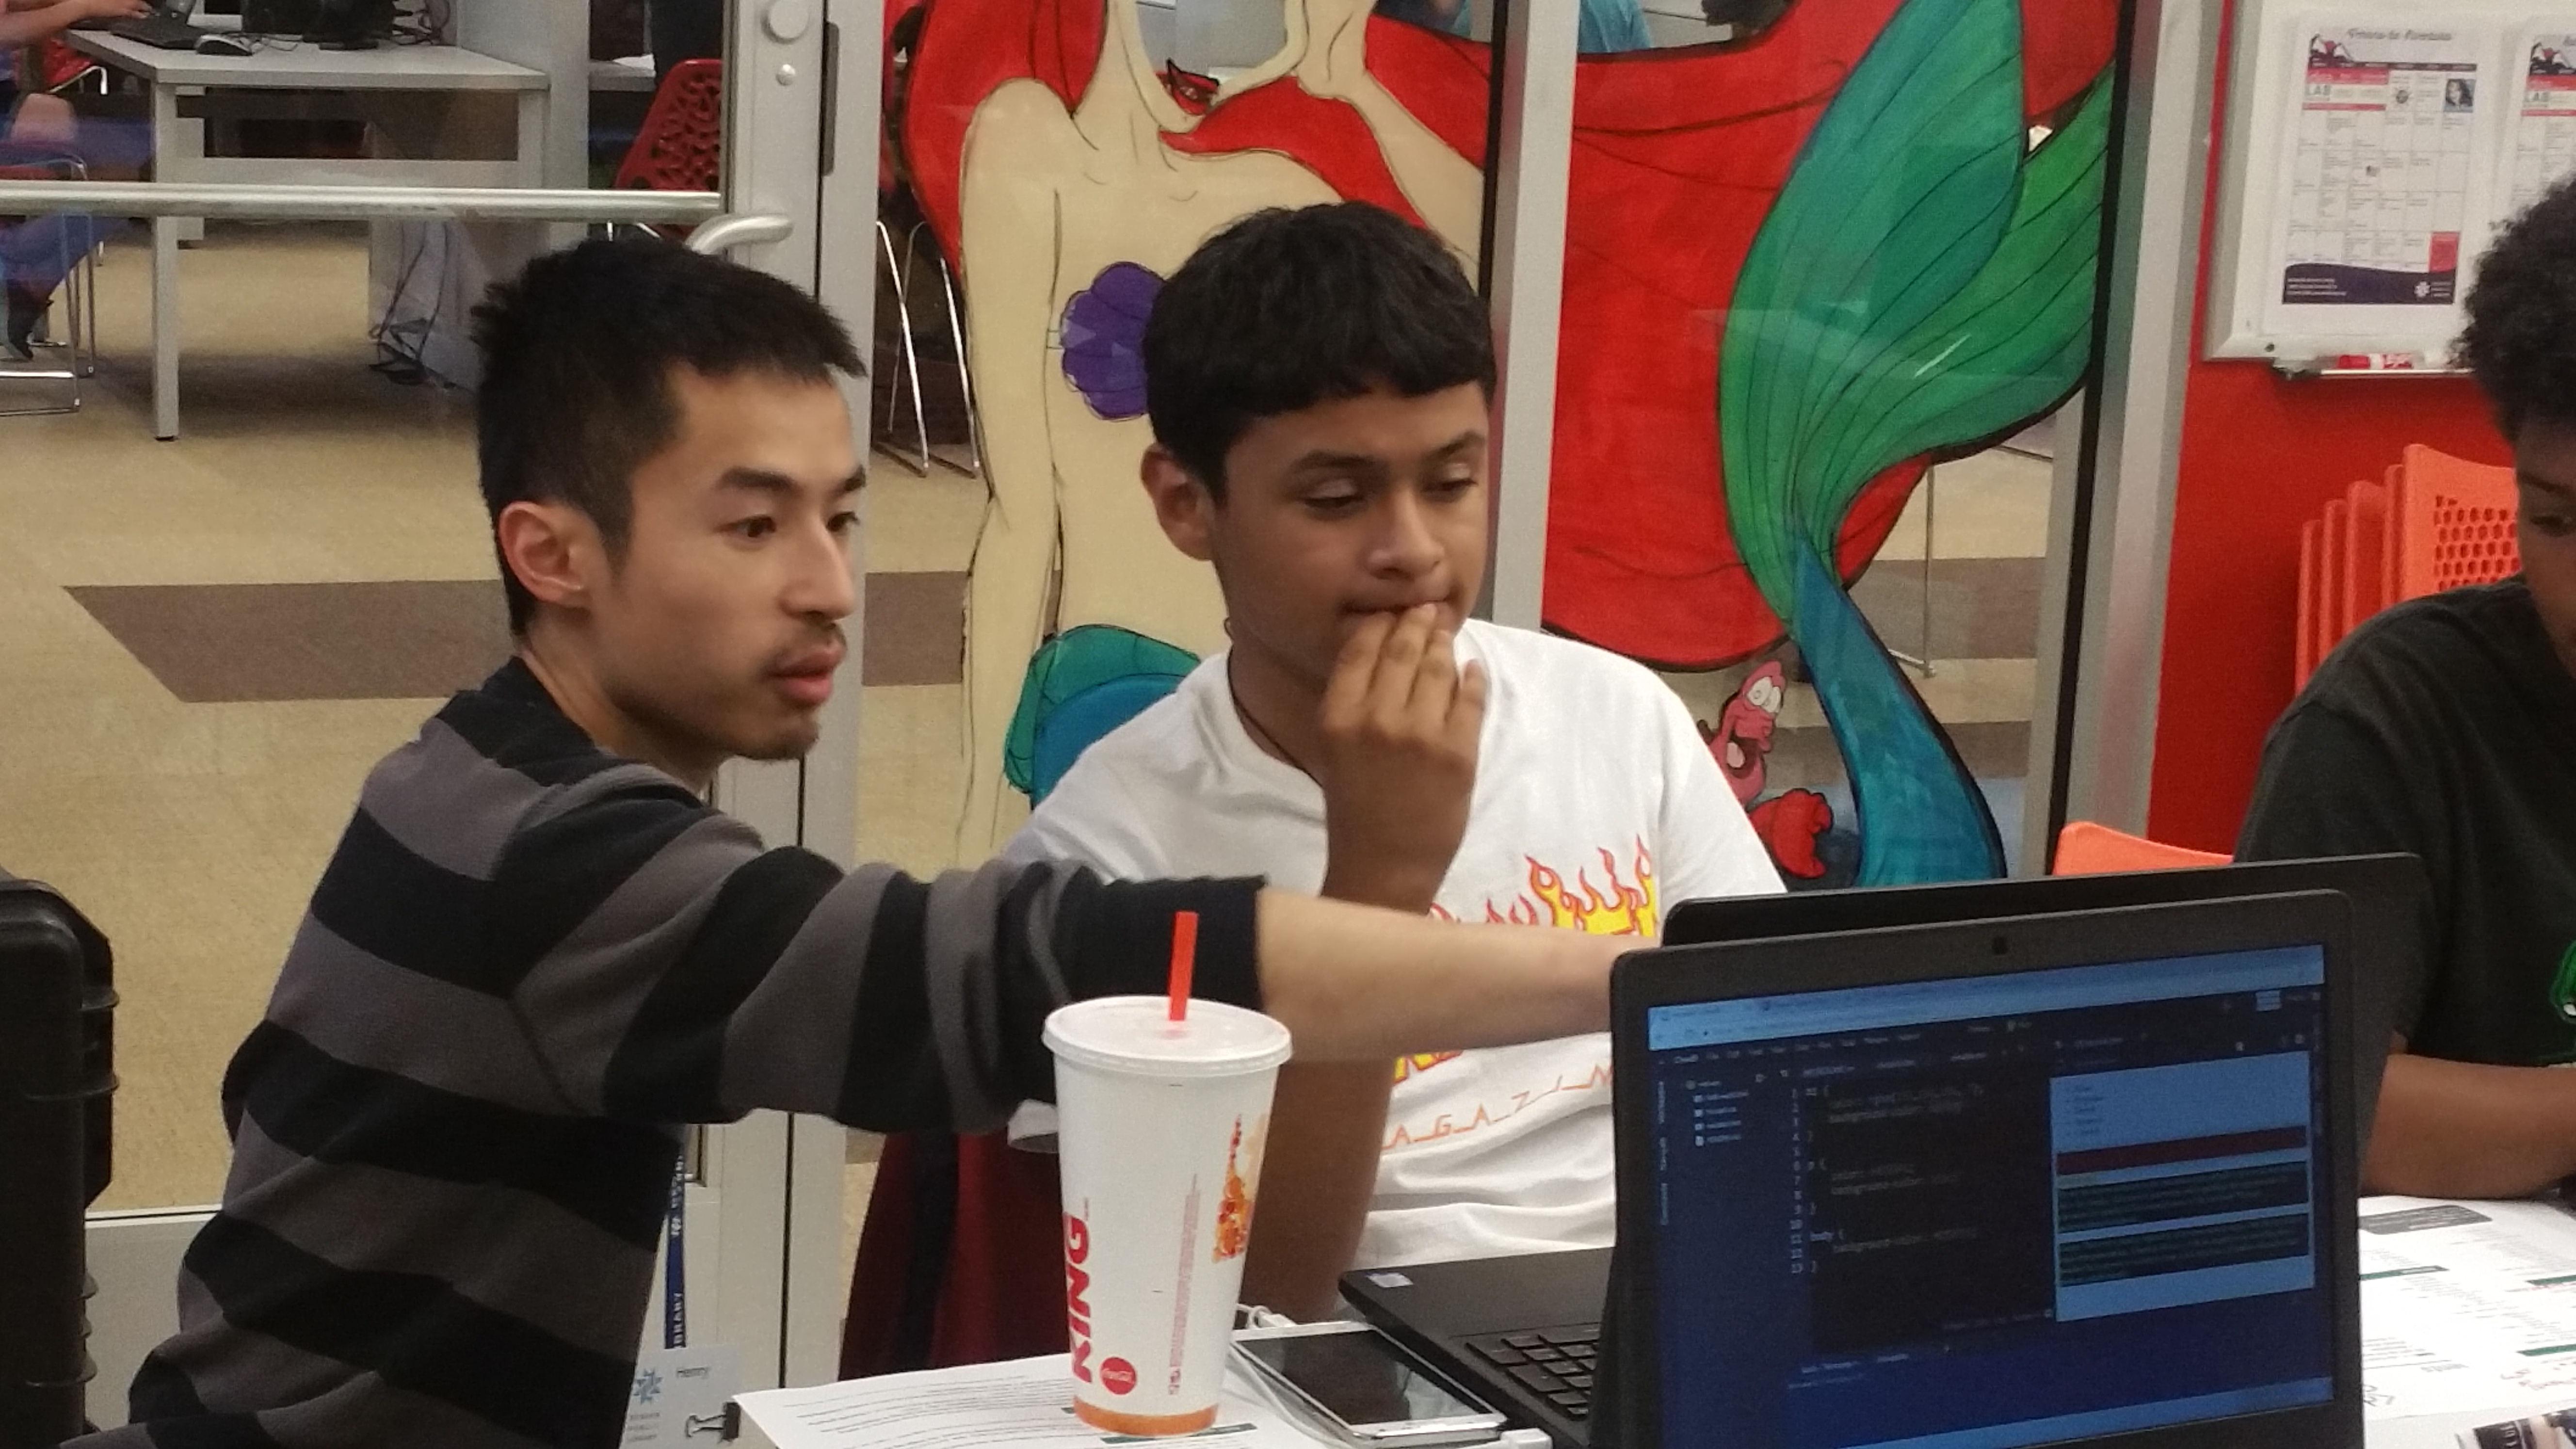 A mentor helping a participant at the 2017 DevCamp in the Montbello Branch Library